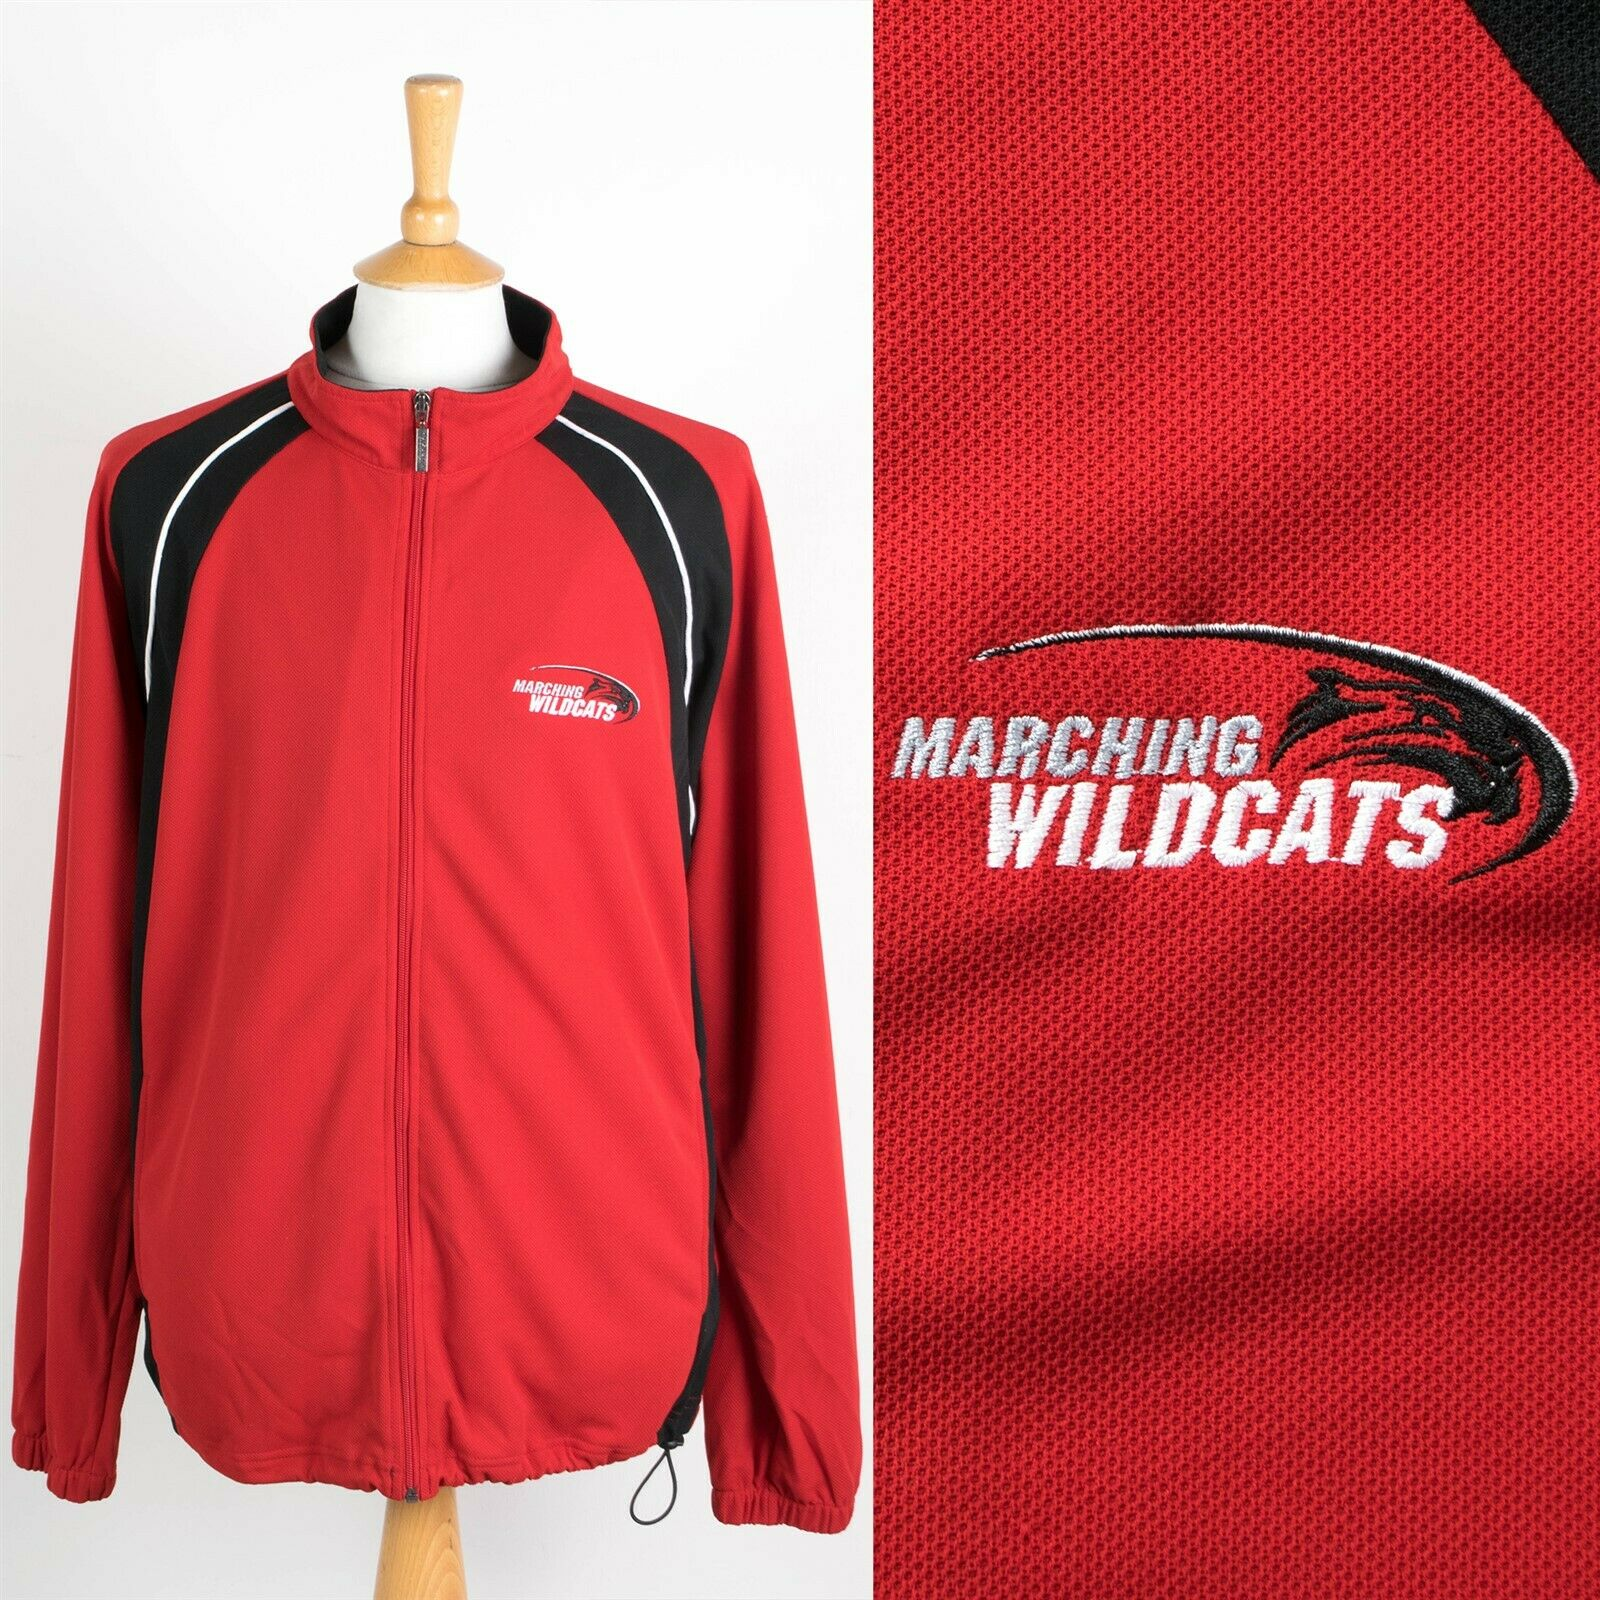 MENS USA MARCHING WILDCATS TRACKSUIT TOP TRACK JACKET TRAINING RED XXL 2XL